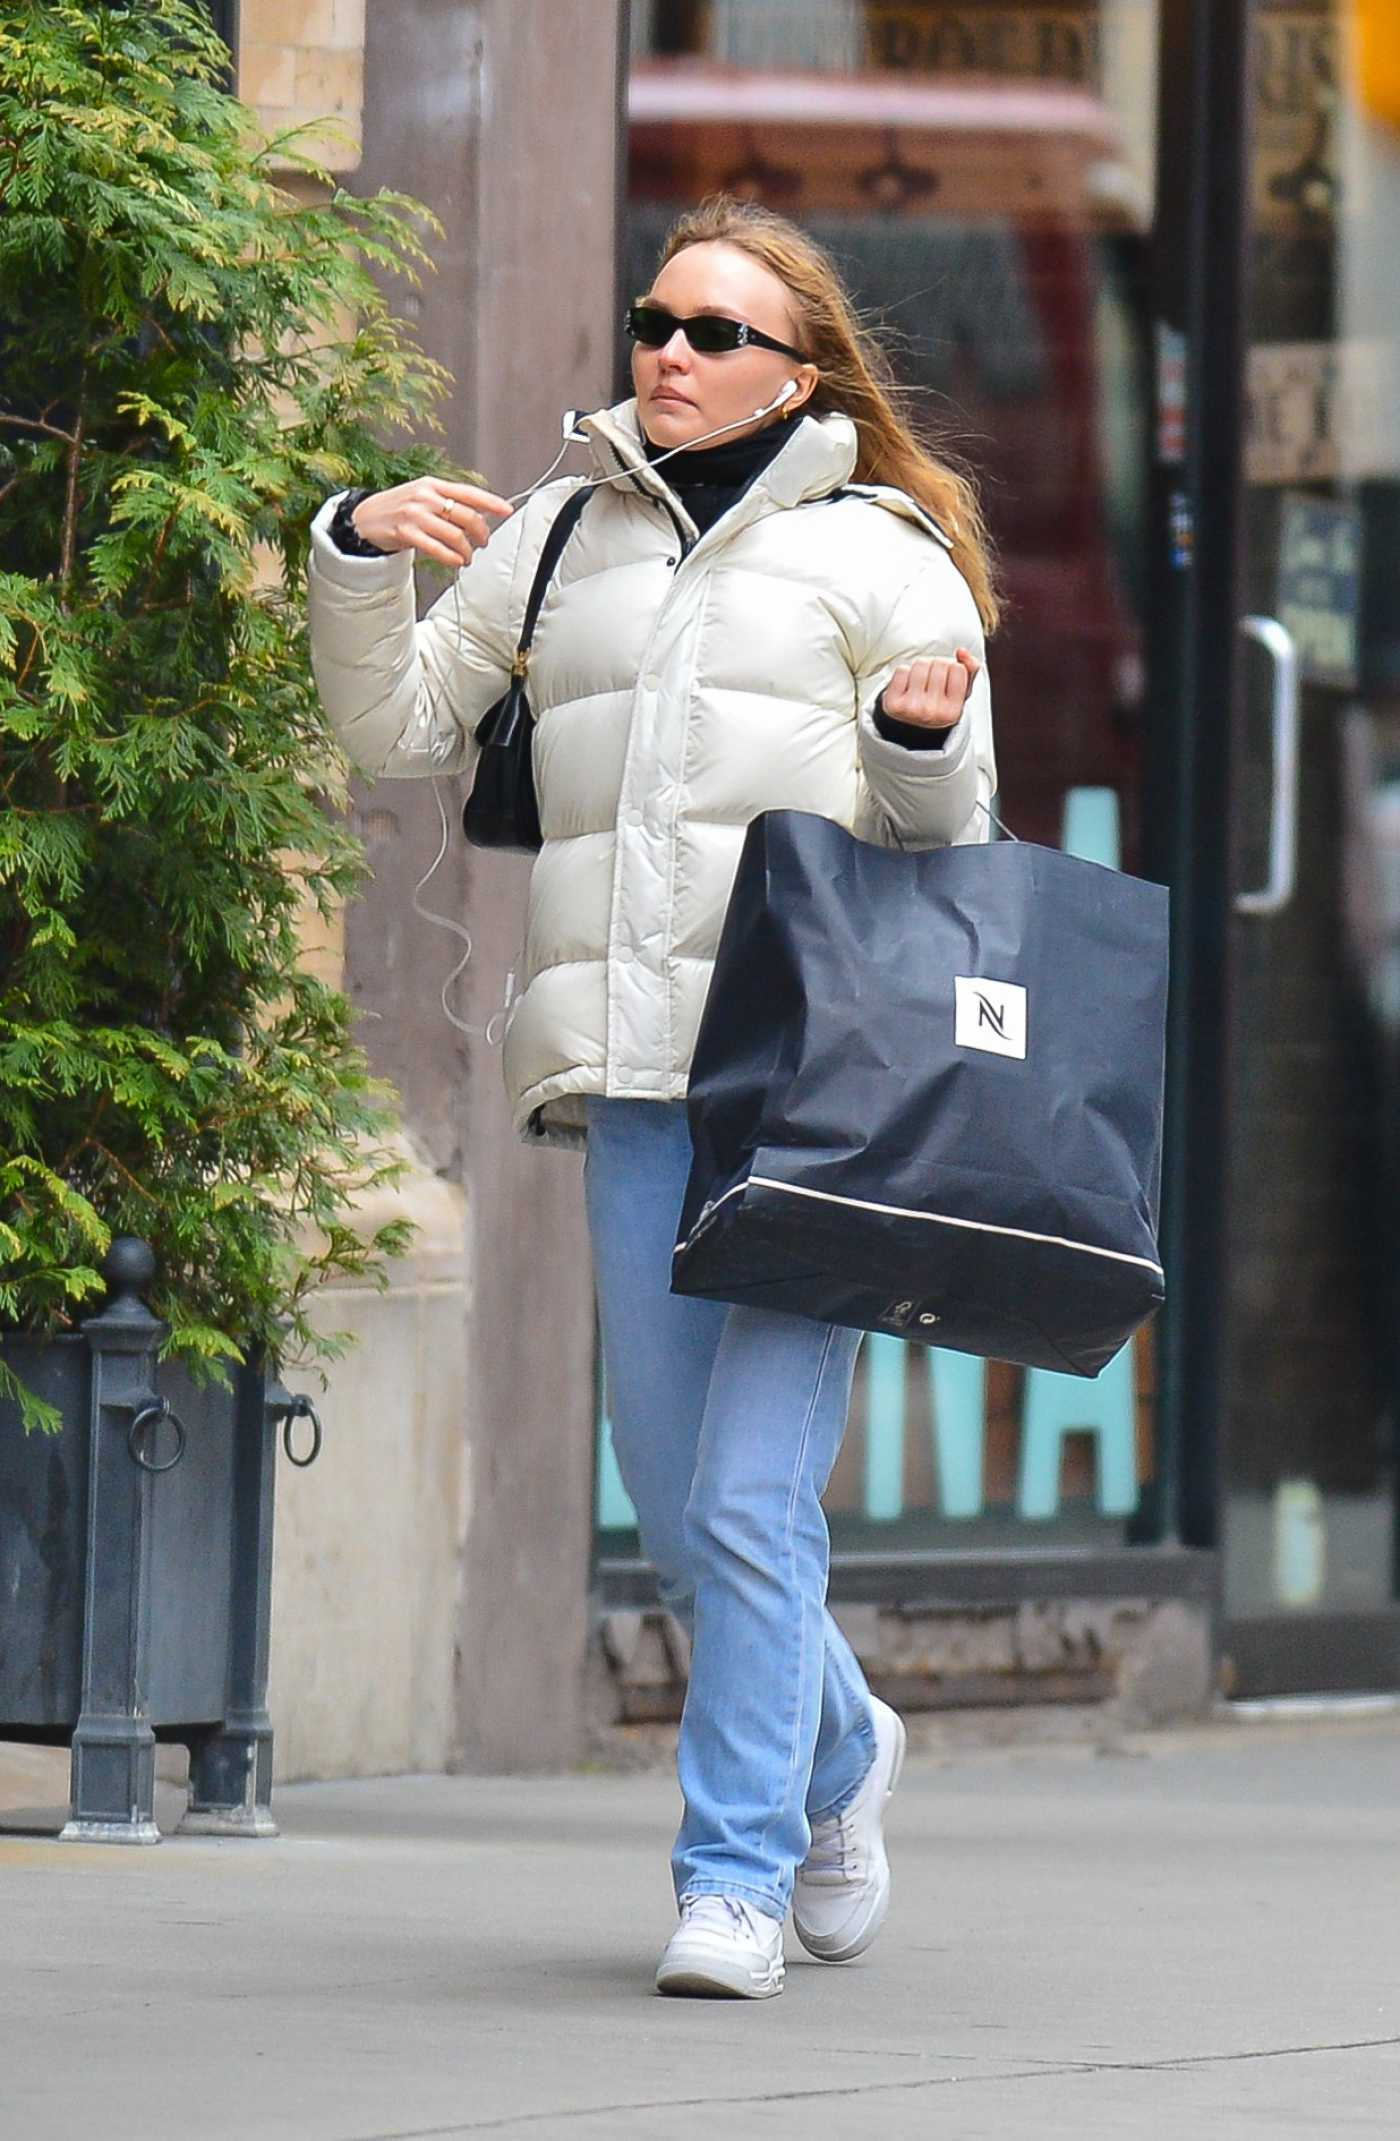 Lily-Rose Depp in a White Puffer Jacket Was Seen Out in New York City 01/29/2020